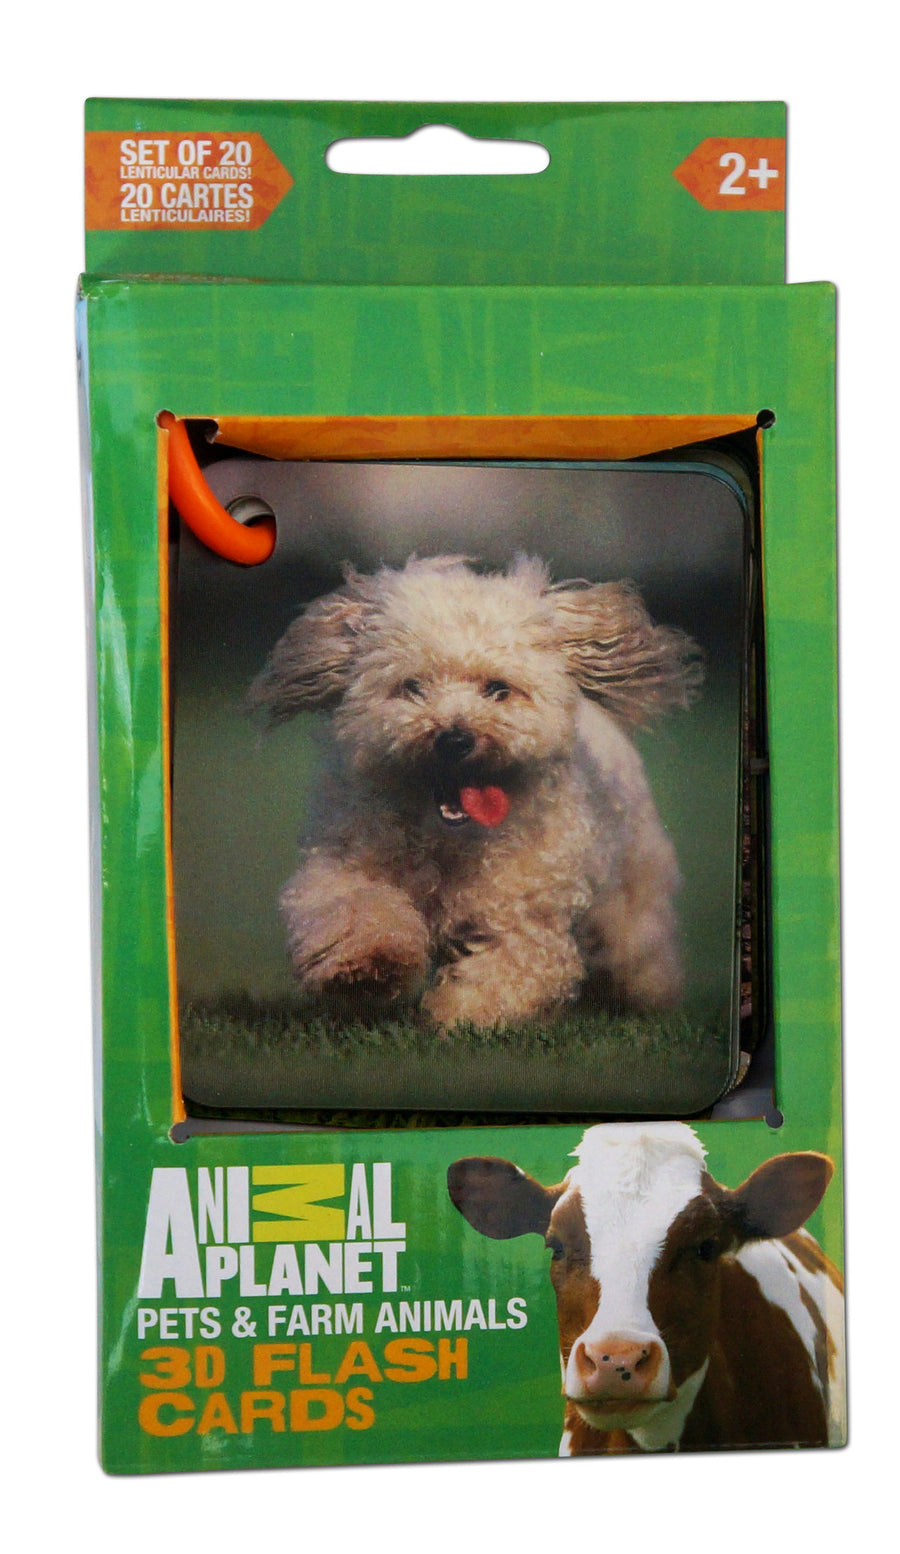 3D Flash cards - PETS & FARM ANIMALS